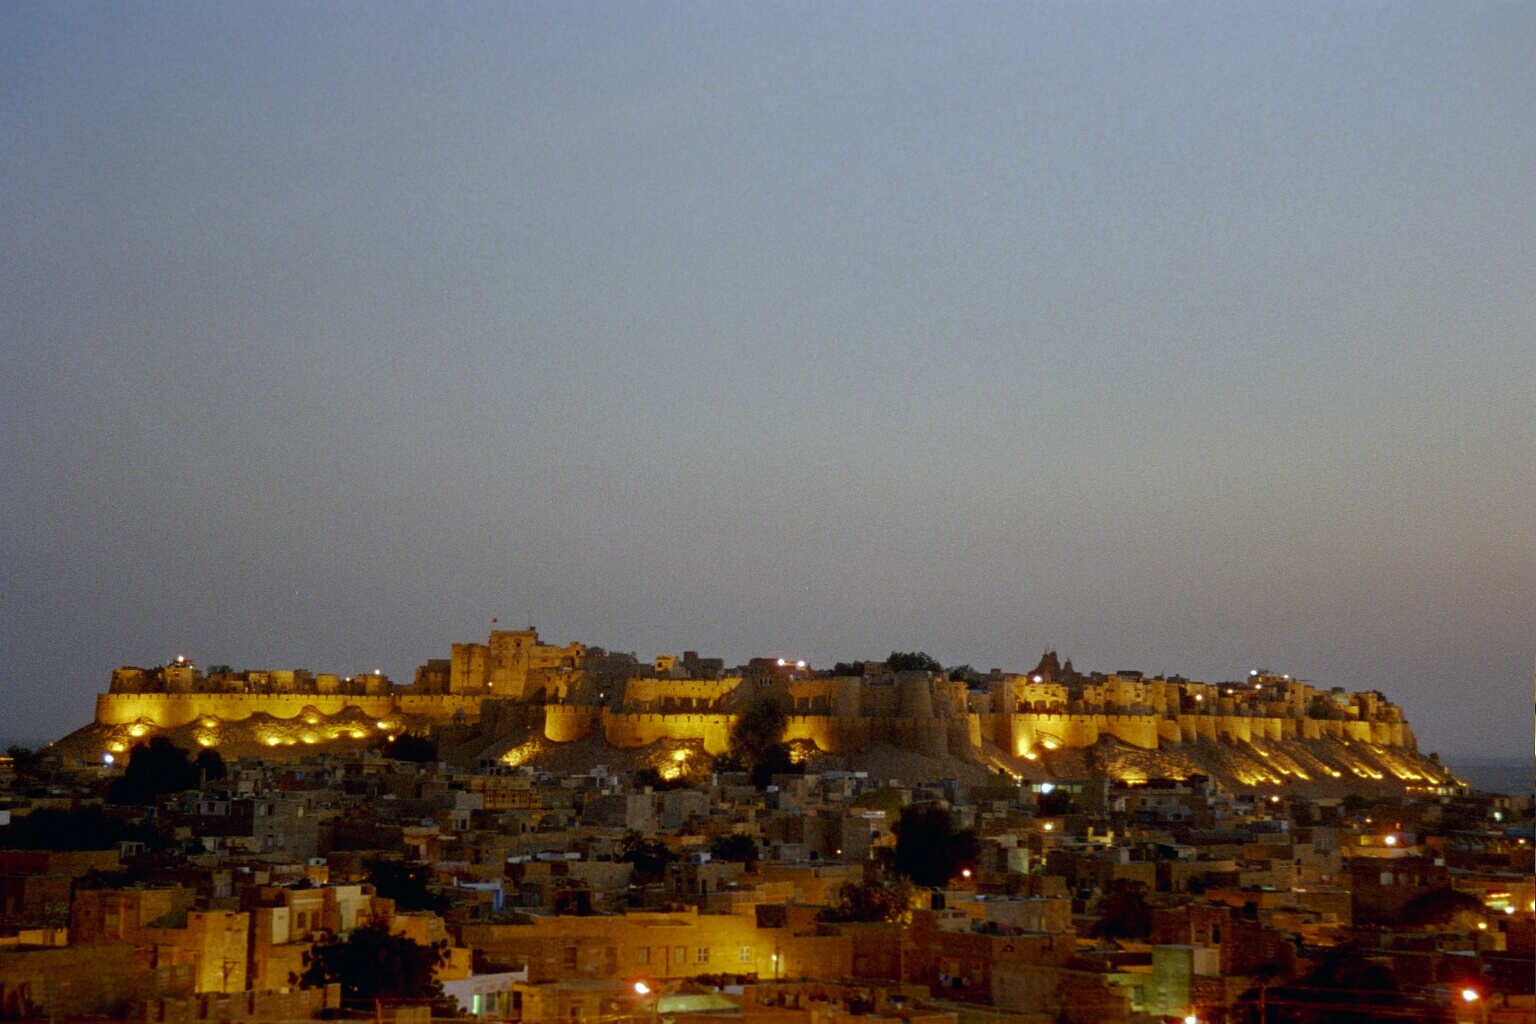 Evening View of Jaisalmer Fort